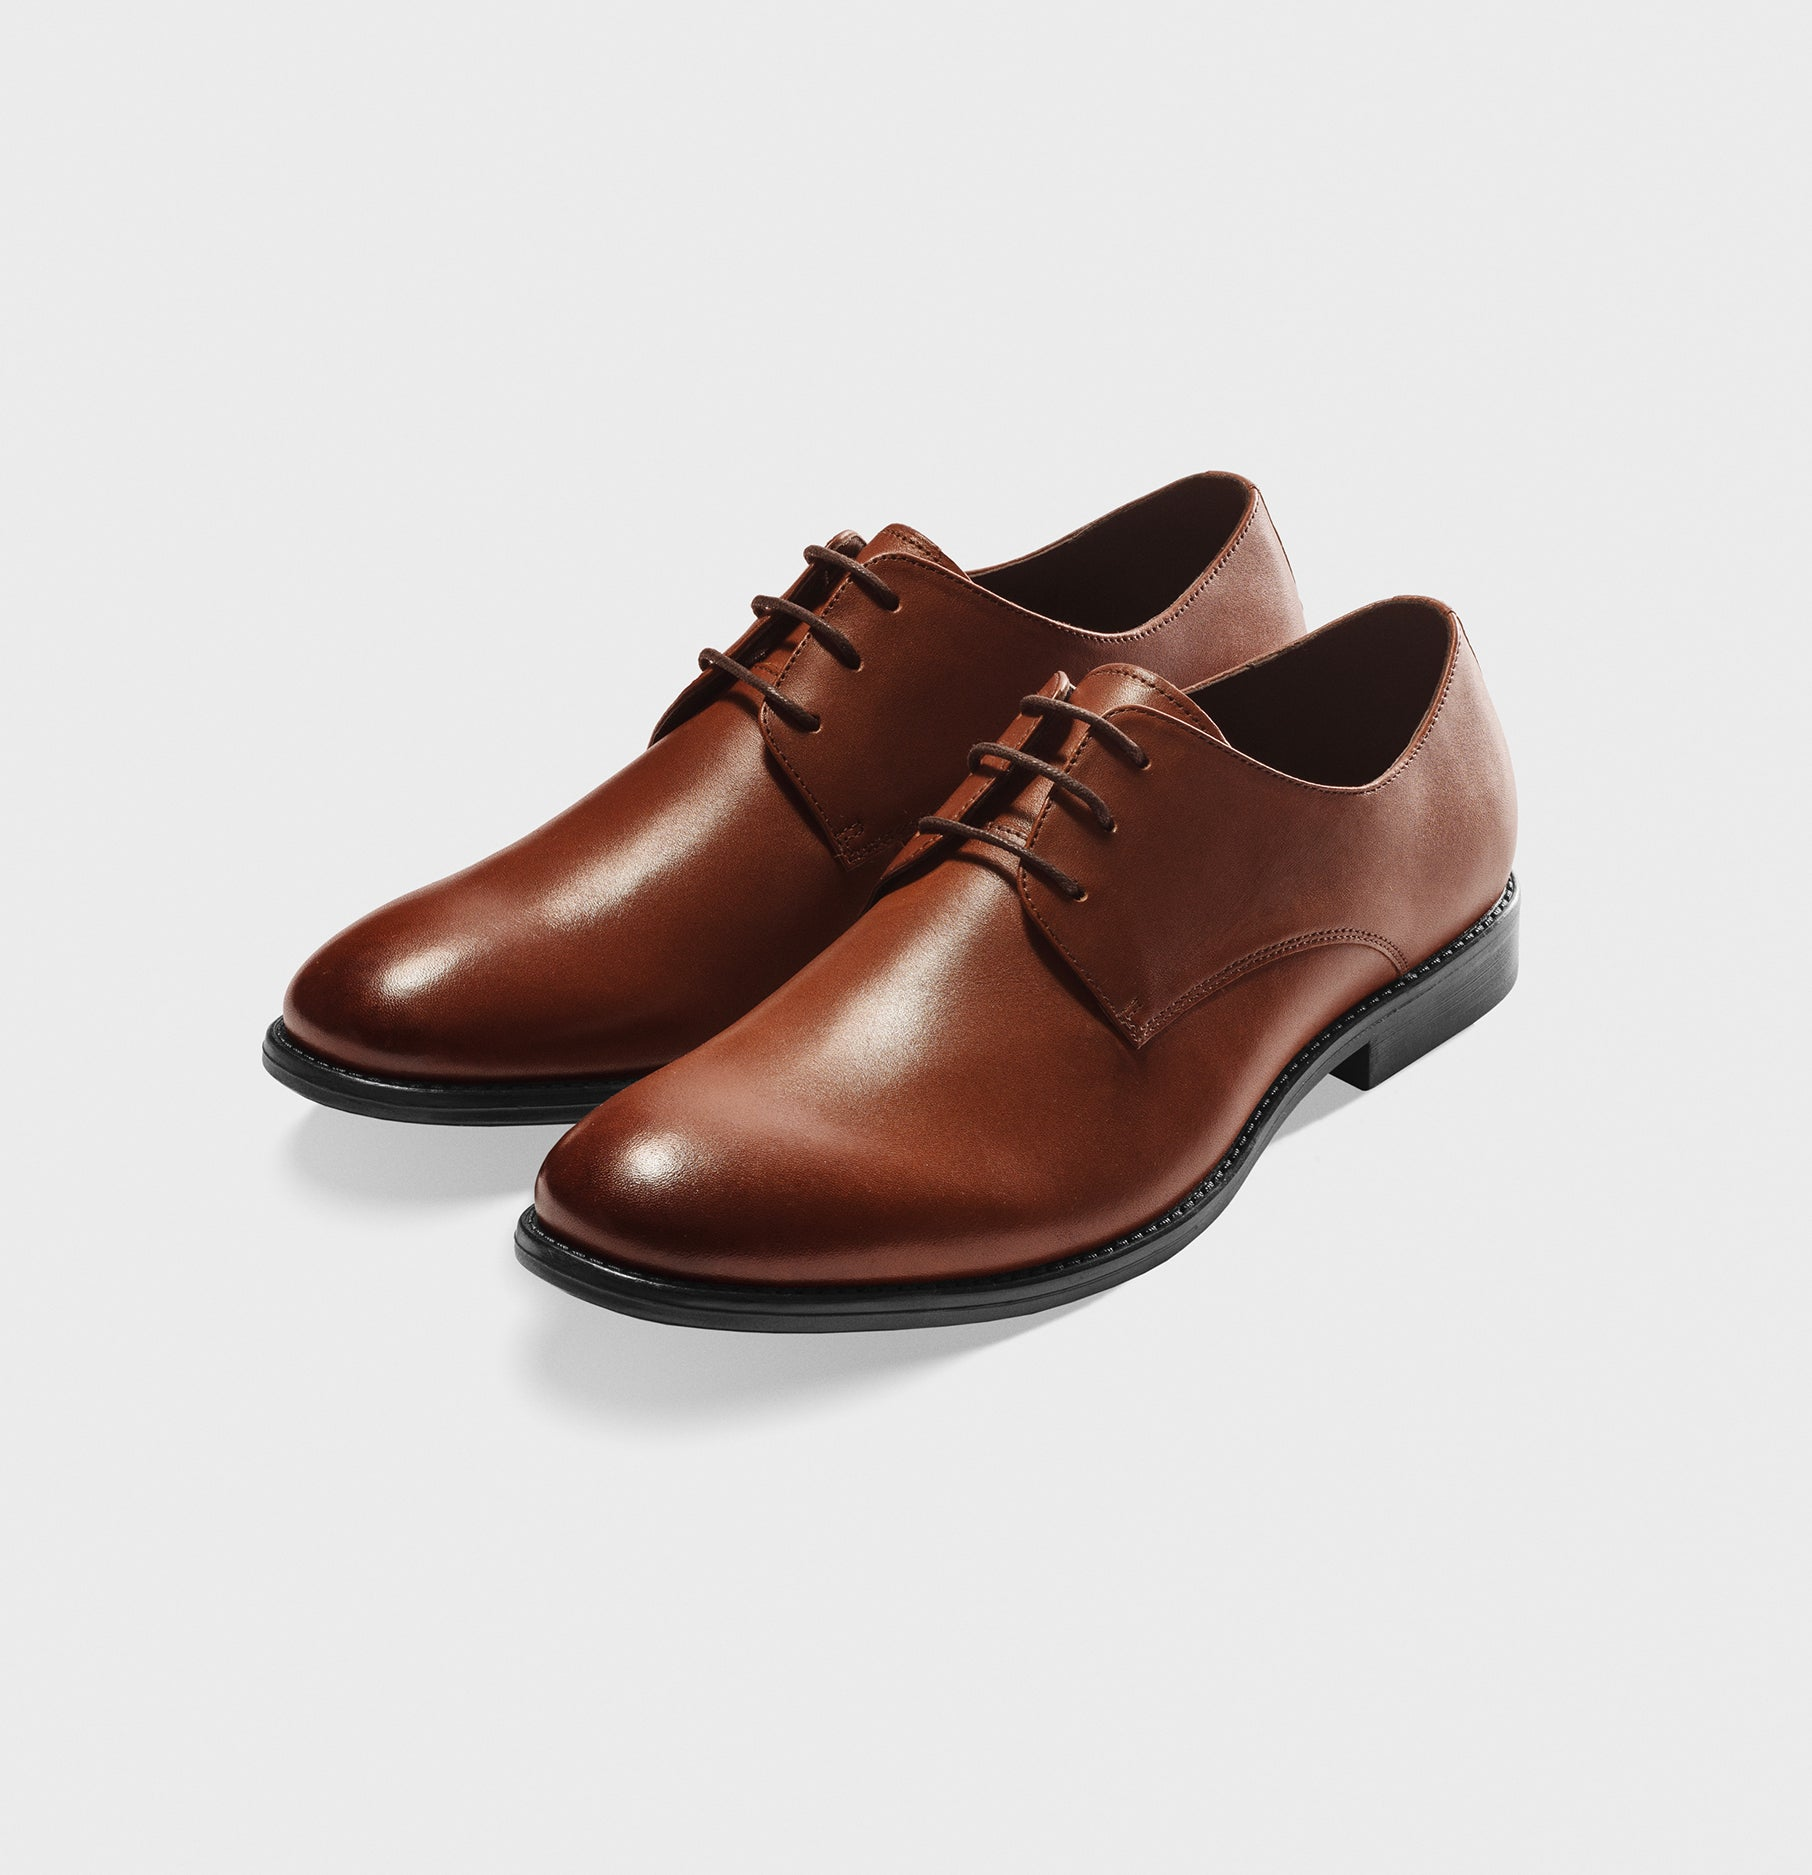 638d66d3f6ab0 Brown Leather Shoes